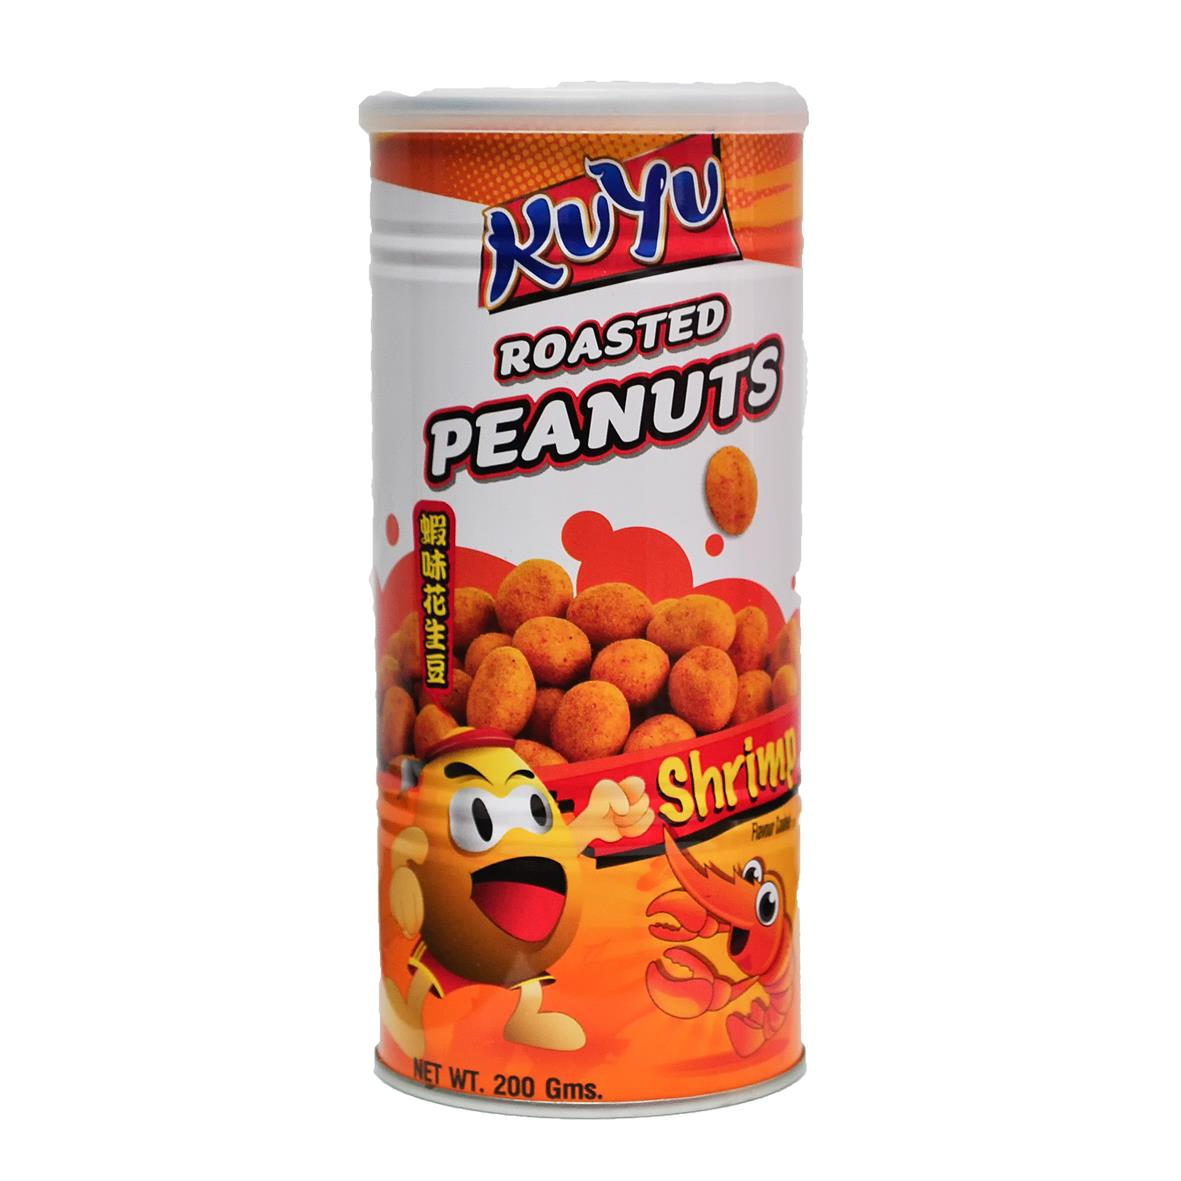 Kuyu Roasted Peanut Shrimp Flavoured 200g